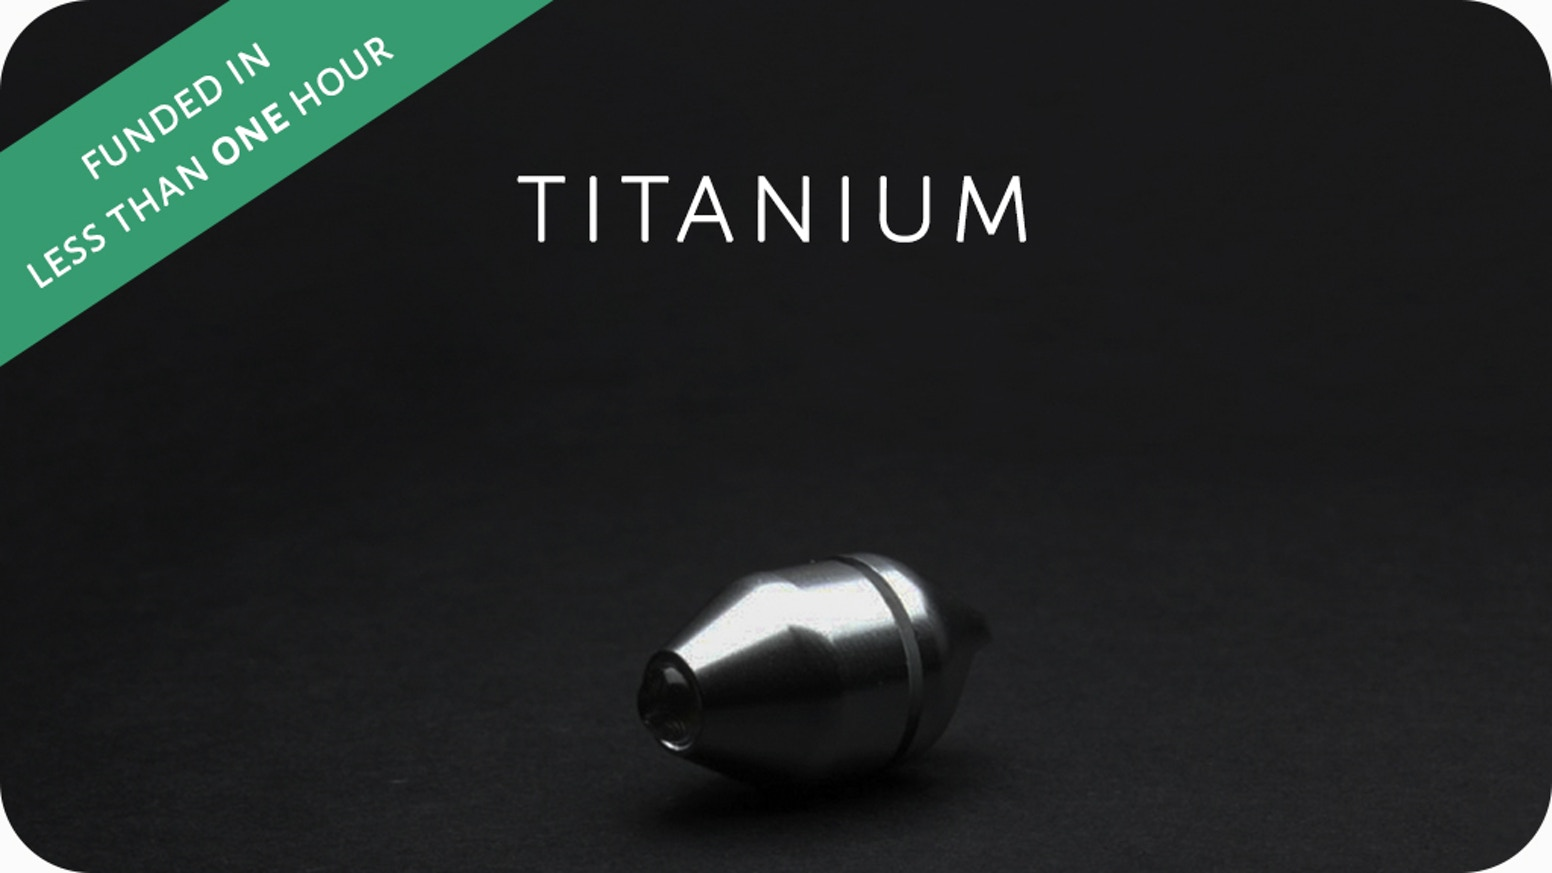 The world's smallest & toughest waterproof Titanium flashlight.